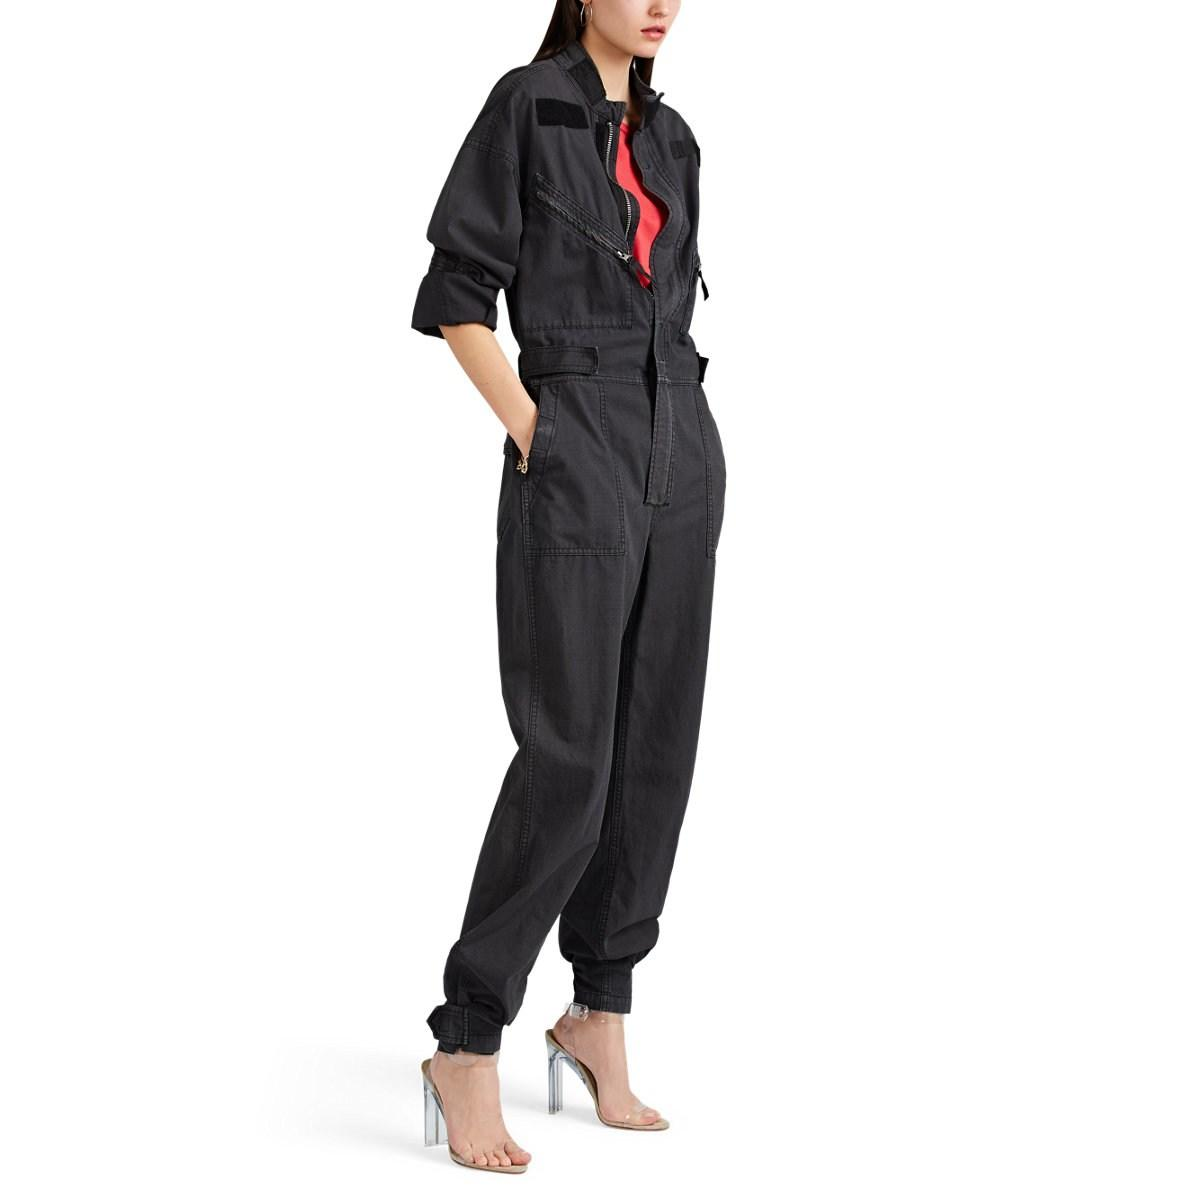 2dc3eb1a68 Lyst - RE DONE Cotton Ripstop Jumpsuit in Black